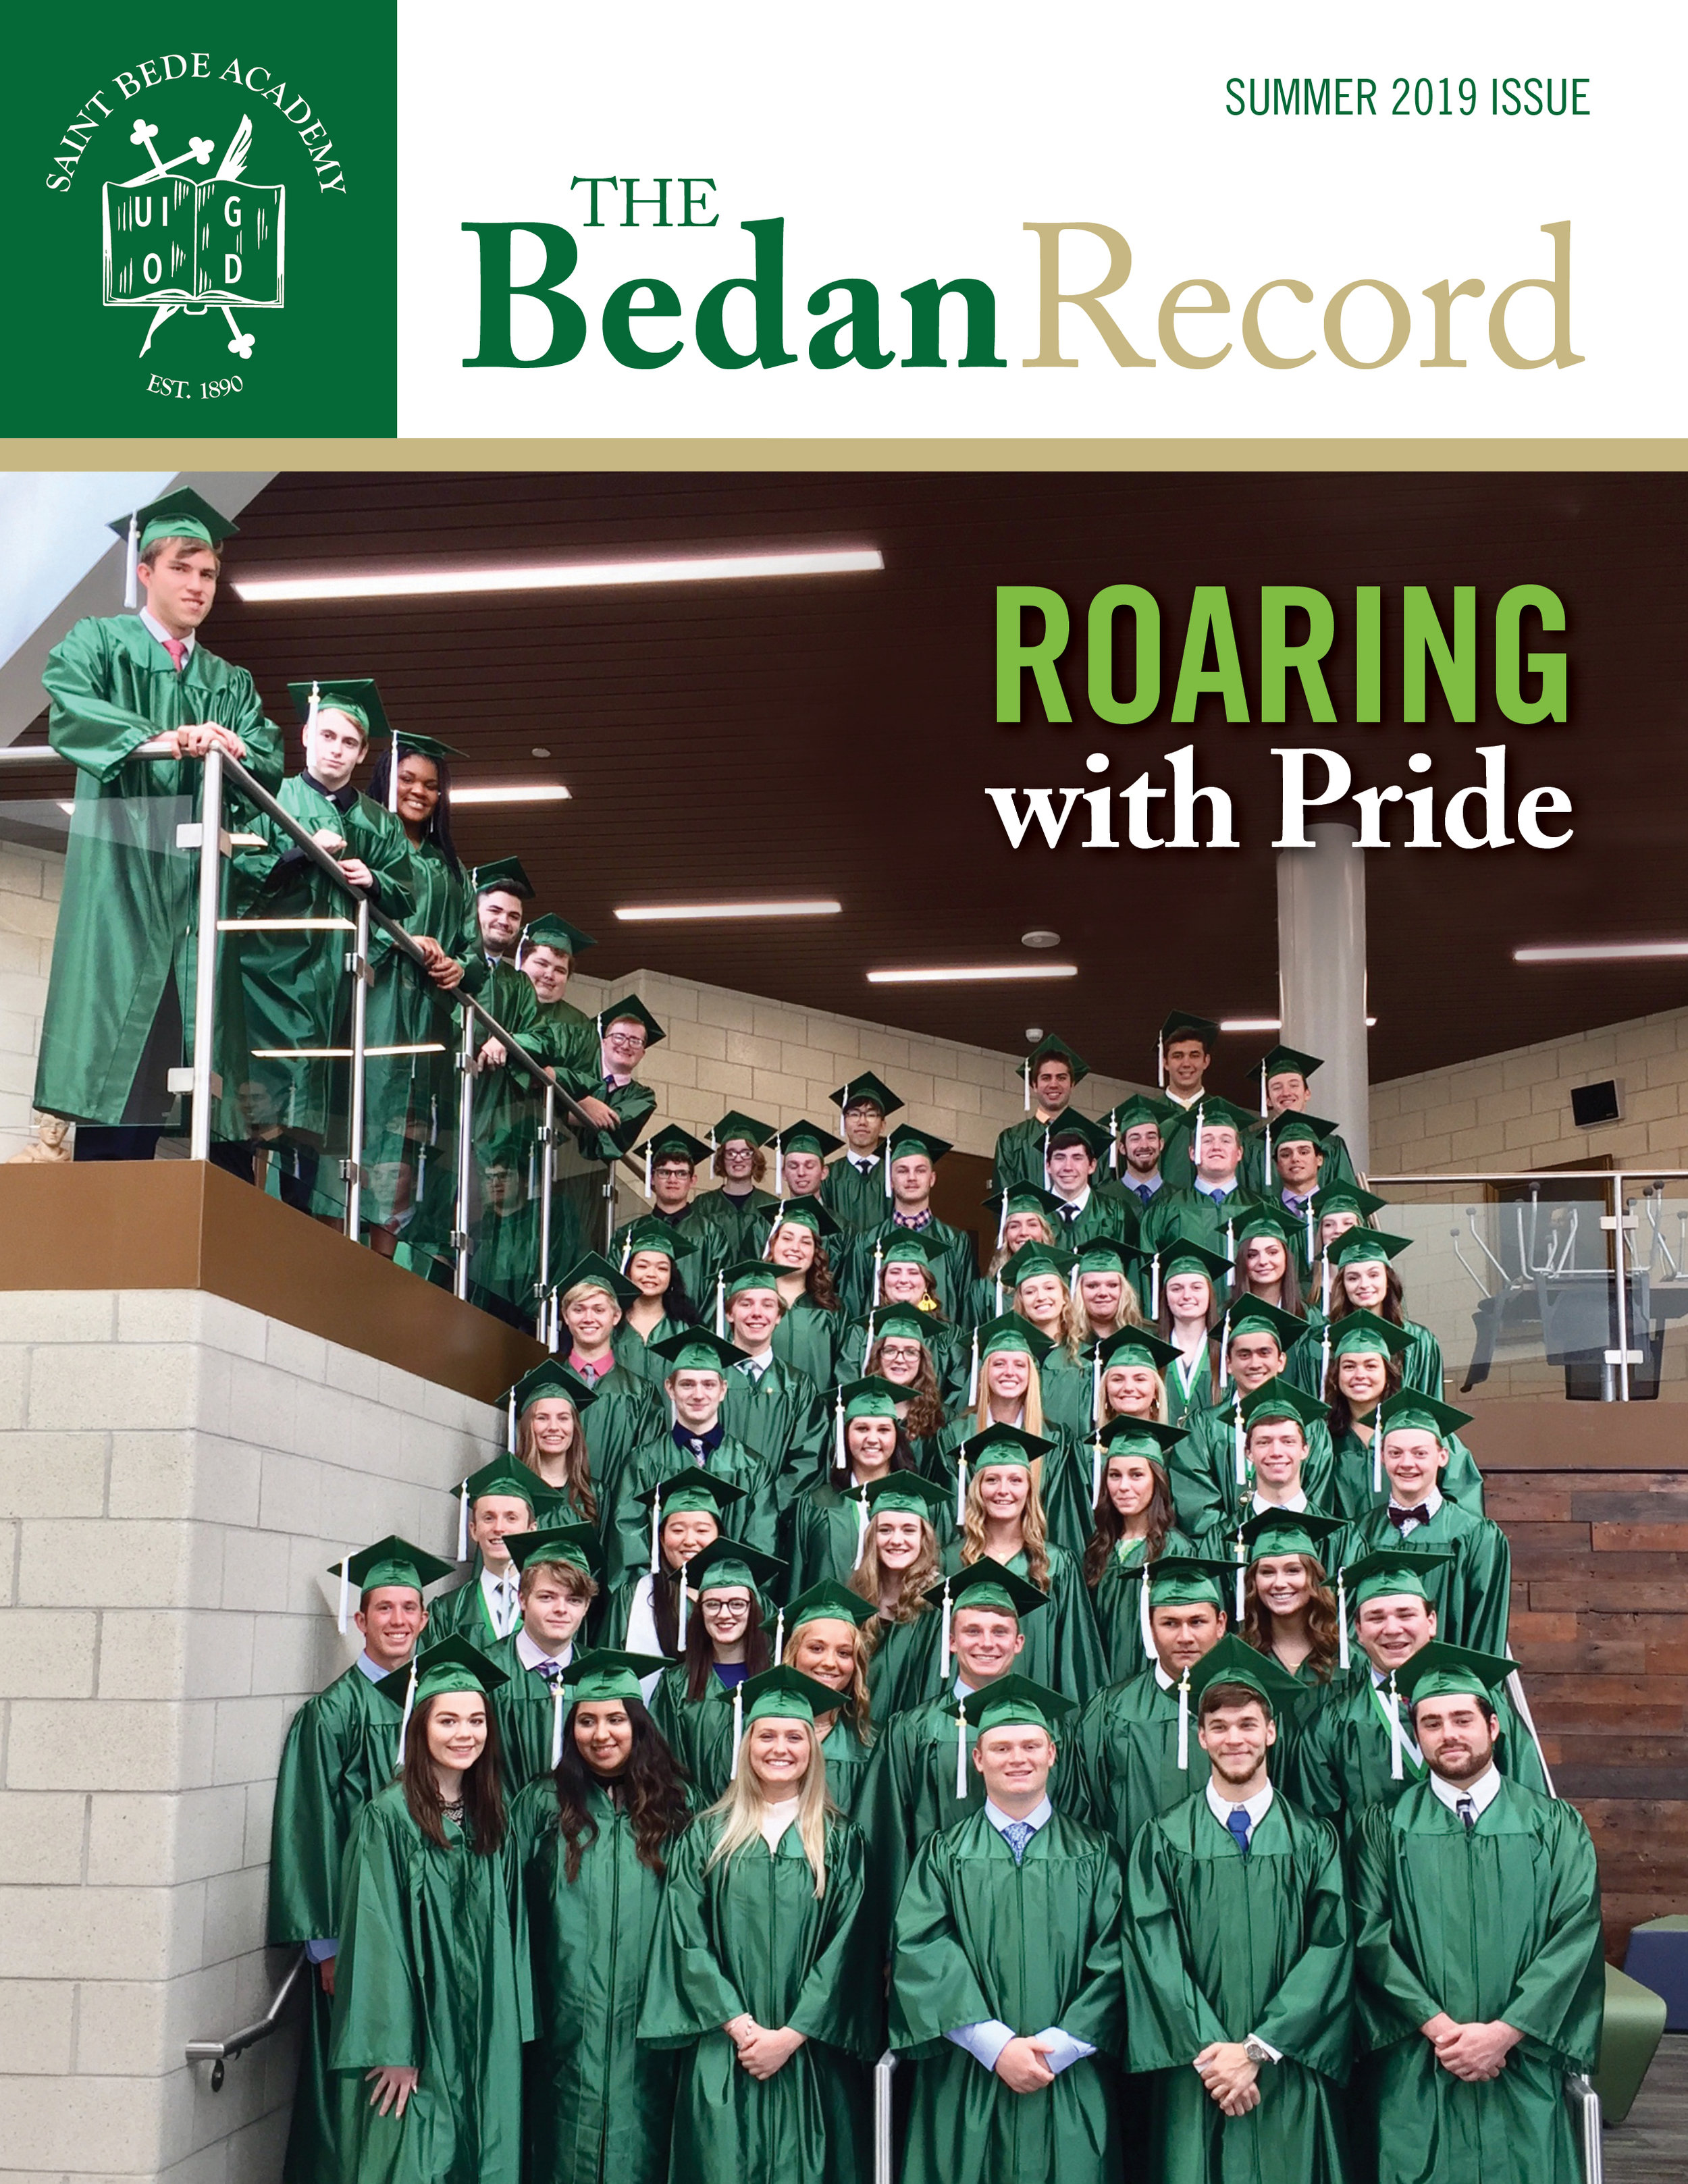 The Bedan Record - Summer 2019 Issue